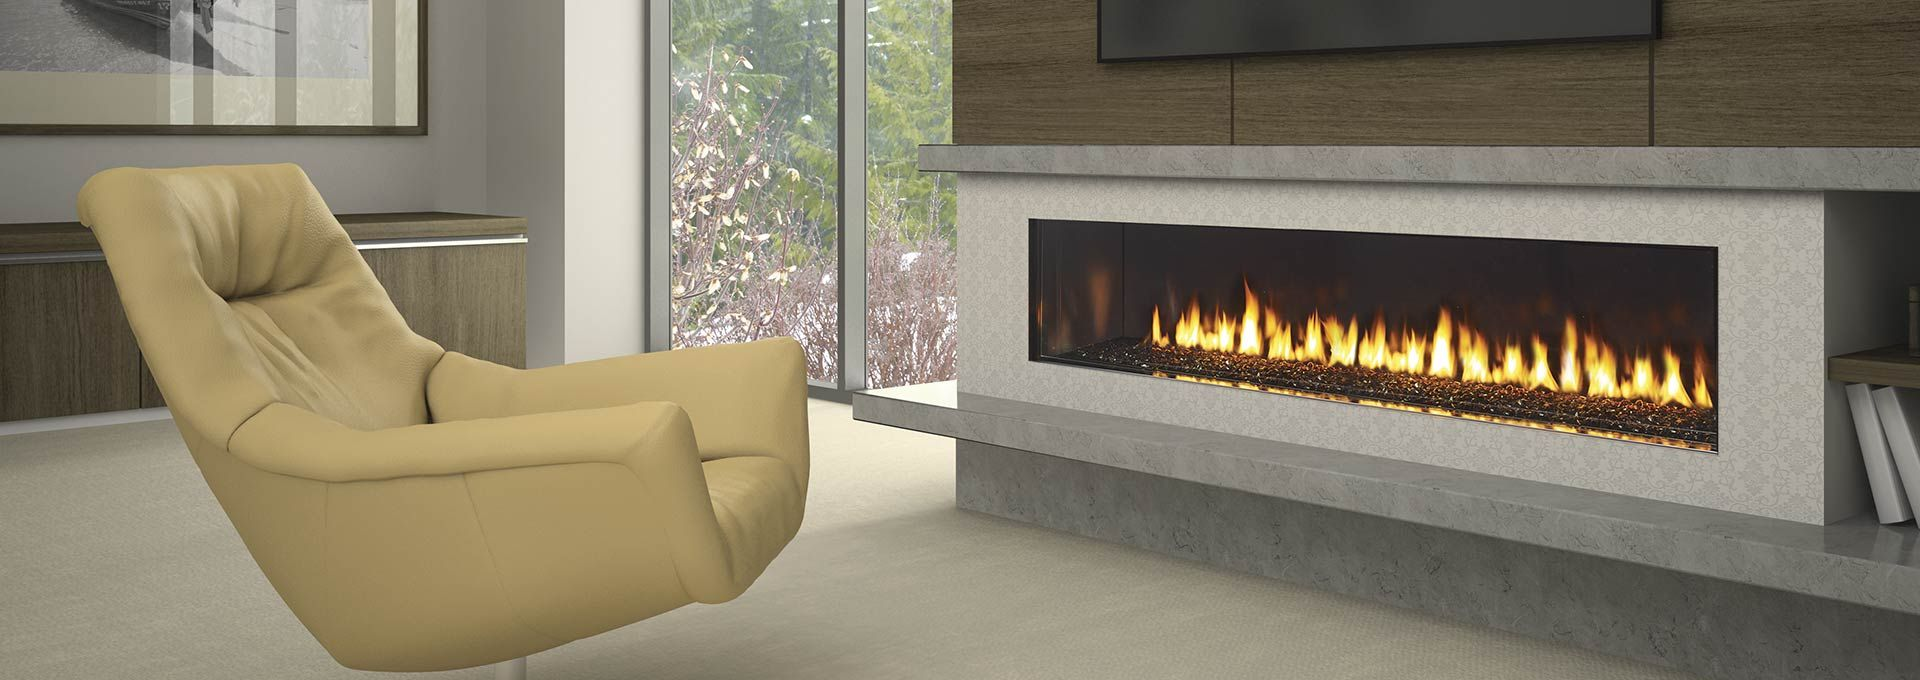 Simple Clean Wide Gas Fireplace With Not Too Deep Concrete Look